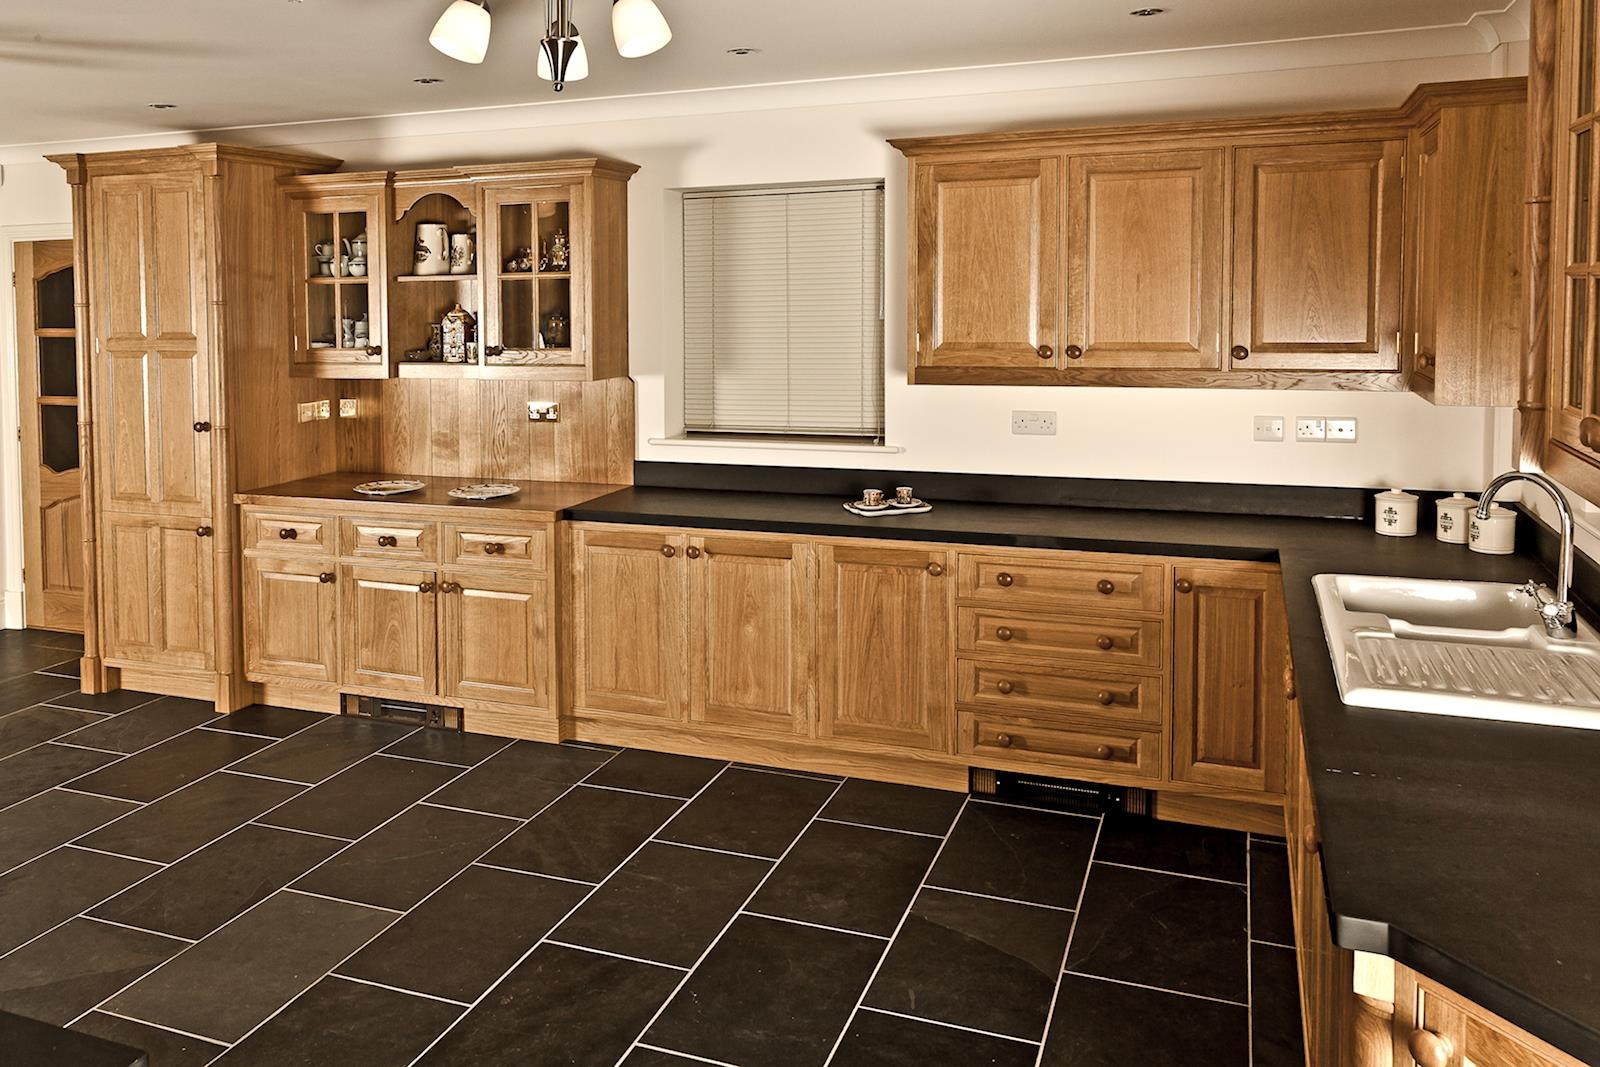 Oak Kitchen Pembrokeshire - Mark Stone's Welsh Kitchens - bespoke kitchens and furnuture made in ...